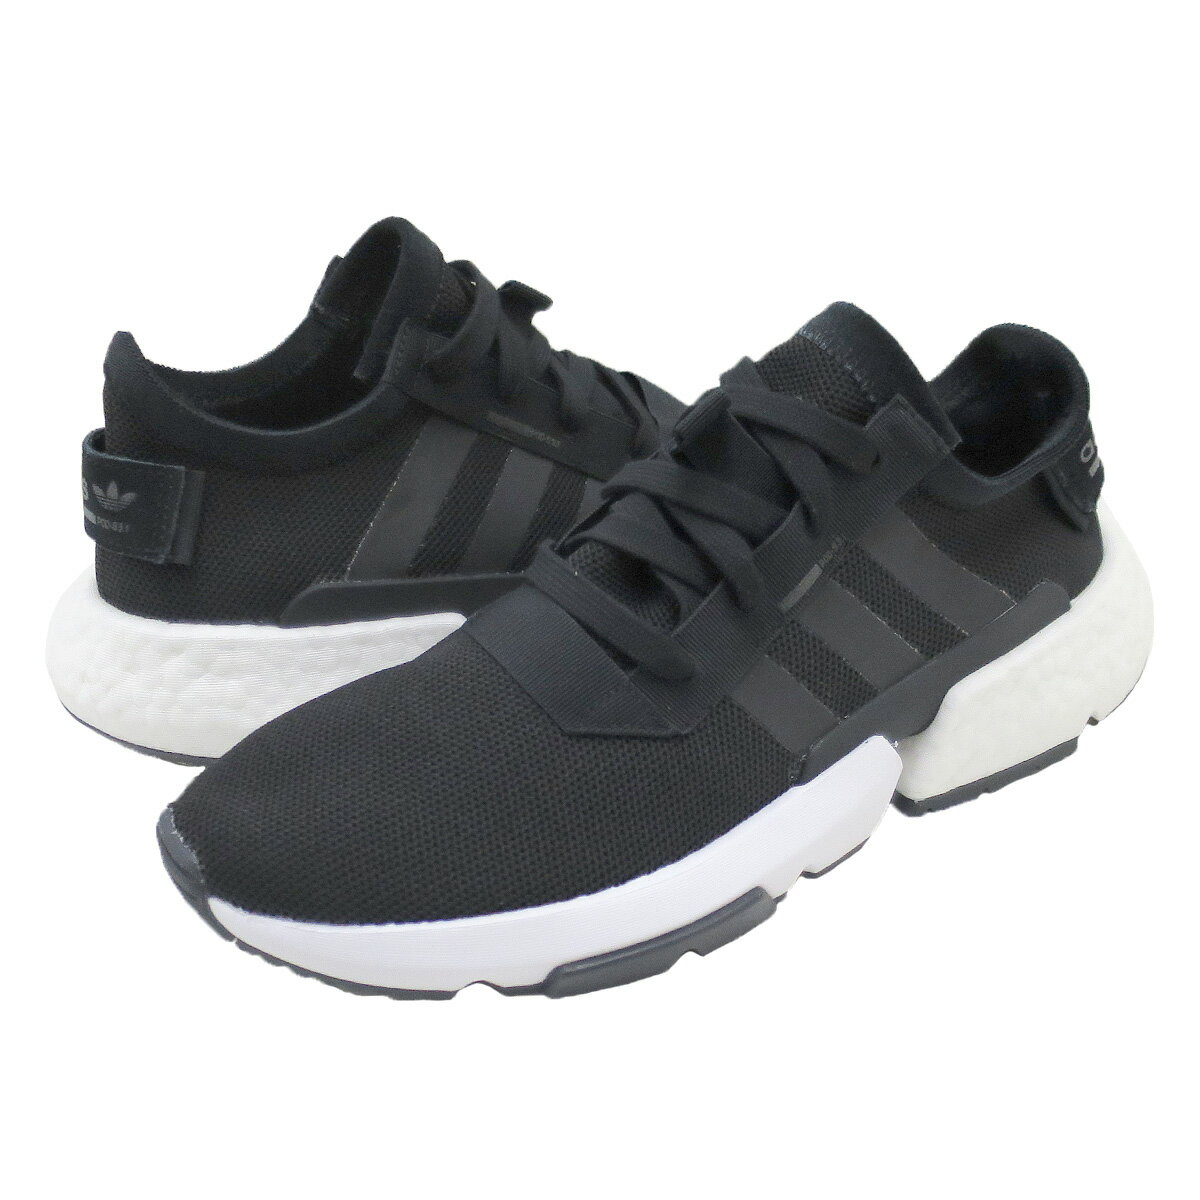 メンズ靴, スニーカー SALE adidas POD-S3.1 KICKS LAB. KICKS LAB. EXCLUSIVE POD-S3.1 CORE BLACKRUNNING WHITERUNNING WHITE ee9695